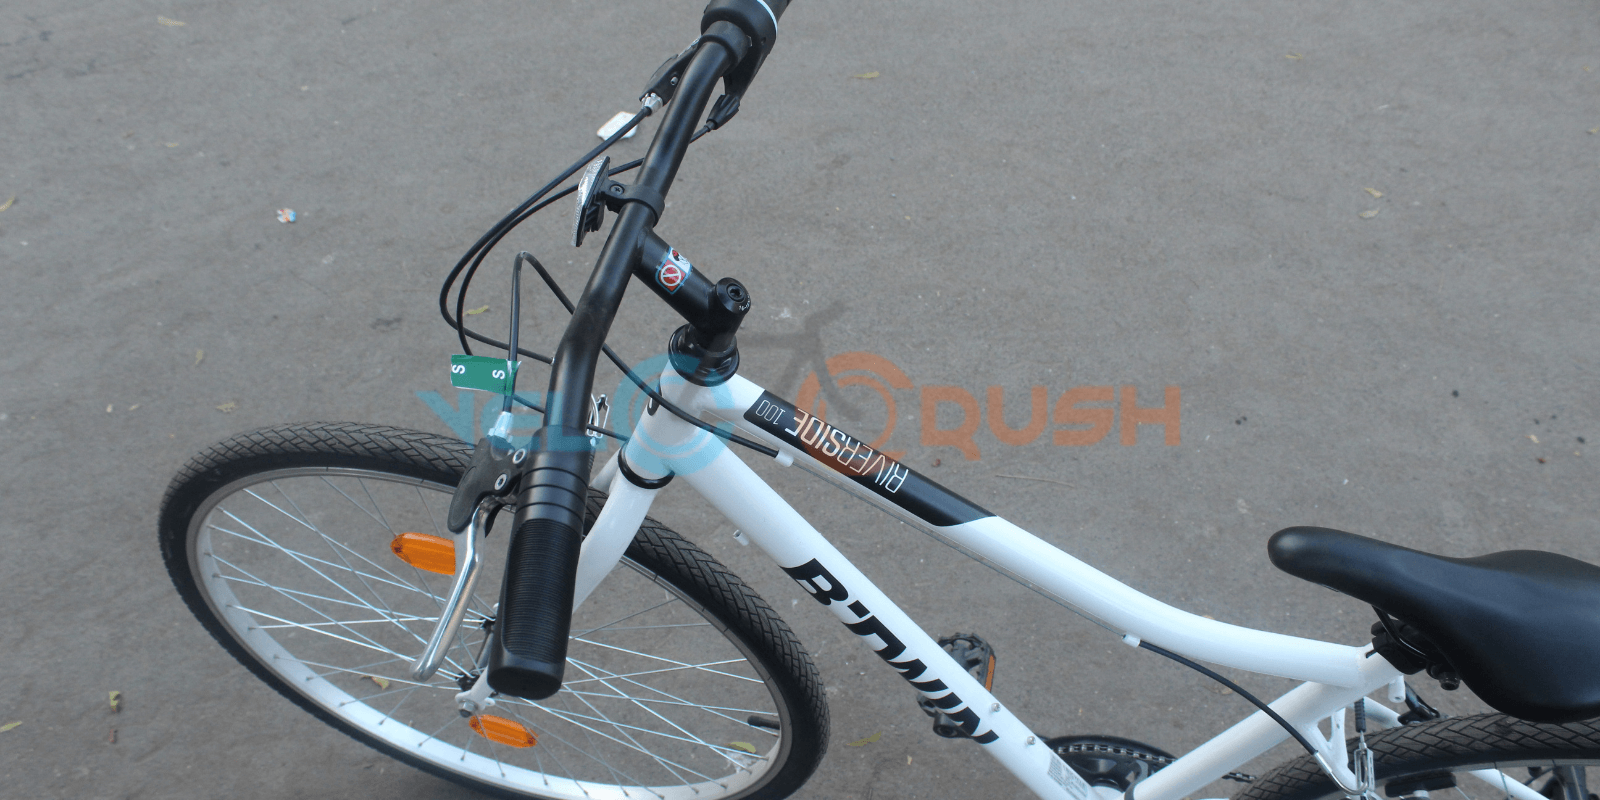 Btwin Riverside 100 Hybrid Cycle [Price & Review] - Velocrushindia